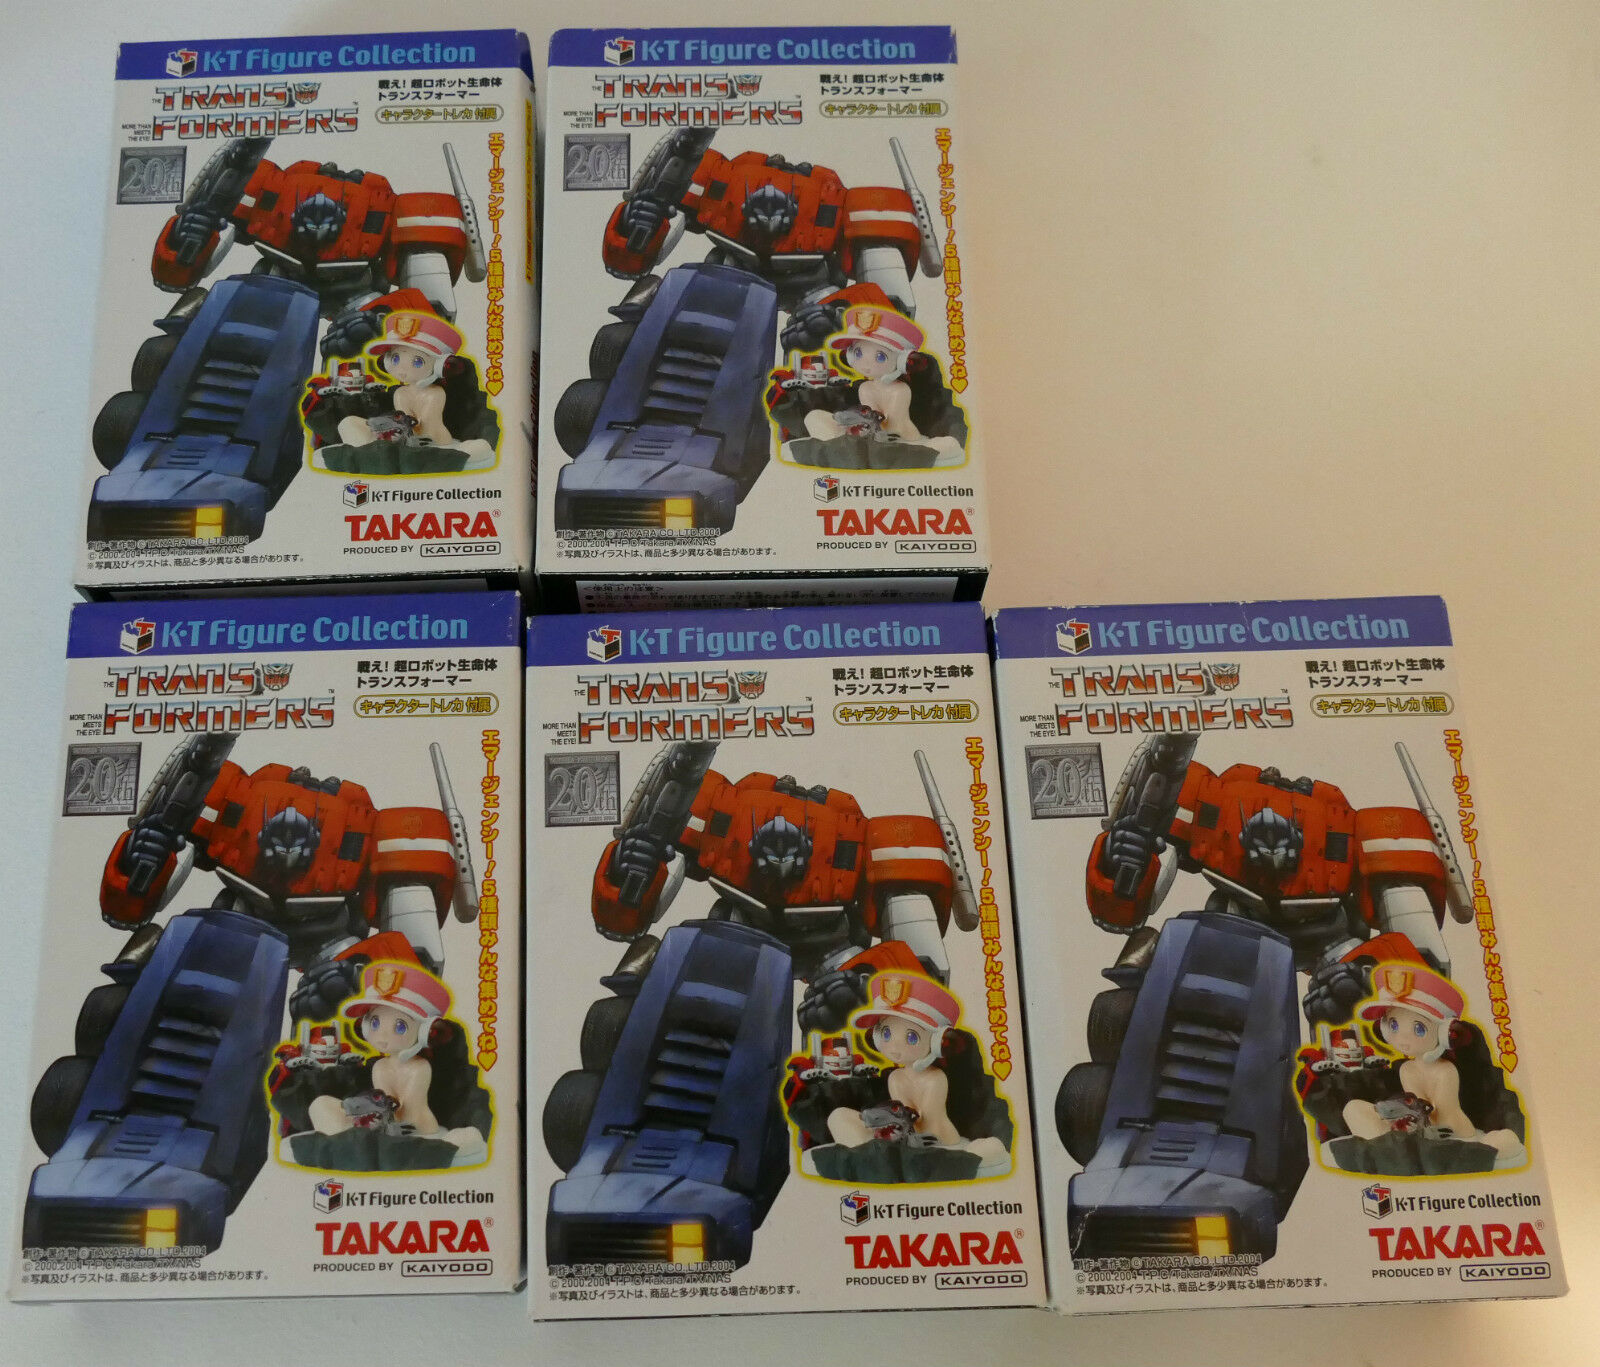 Takara K-T Figure Complete Collection of all 5 Figures BNIB from Japan